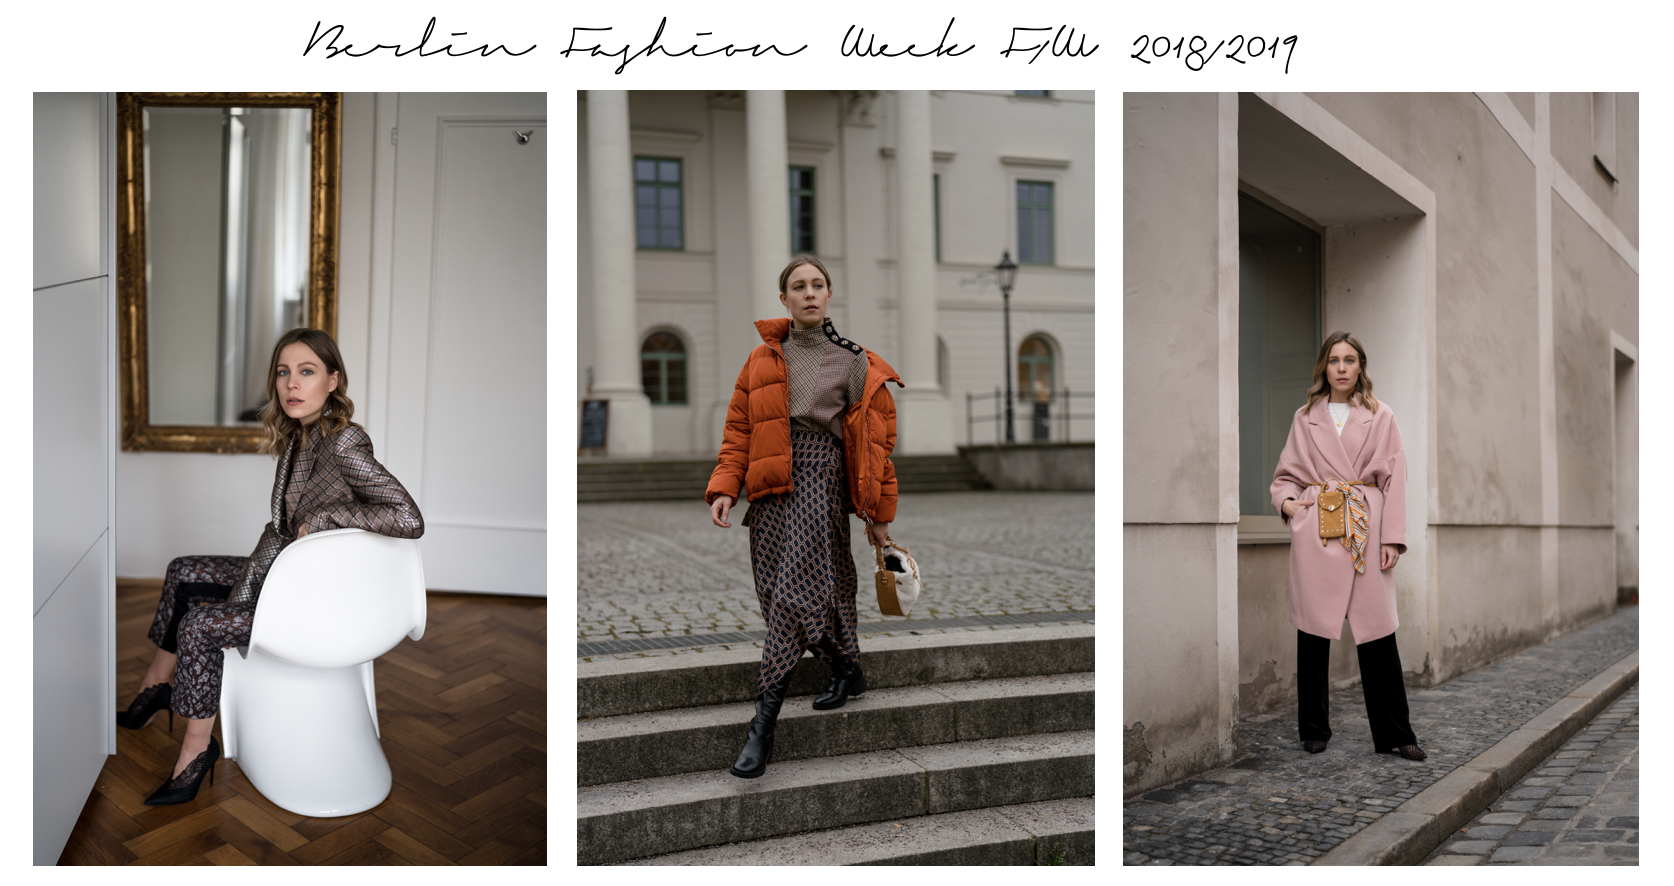 bdff7fa47e64 Fashion Weeks 2018 Recap Jahresrückblick Fashion Week Berlin Mailand  Kopenhagen Outfit Review Modeblog Heidelberg Mannheim Deutschland fashion  blog Germany ...